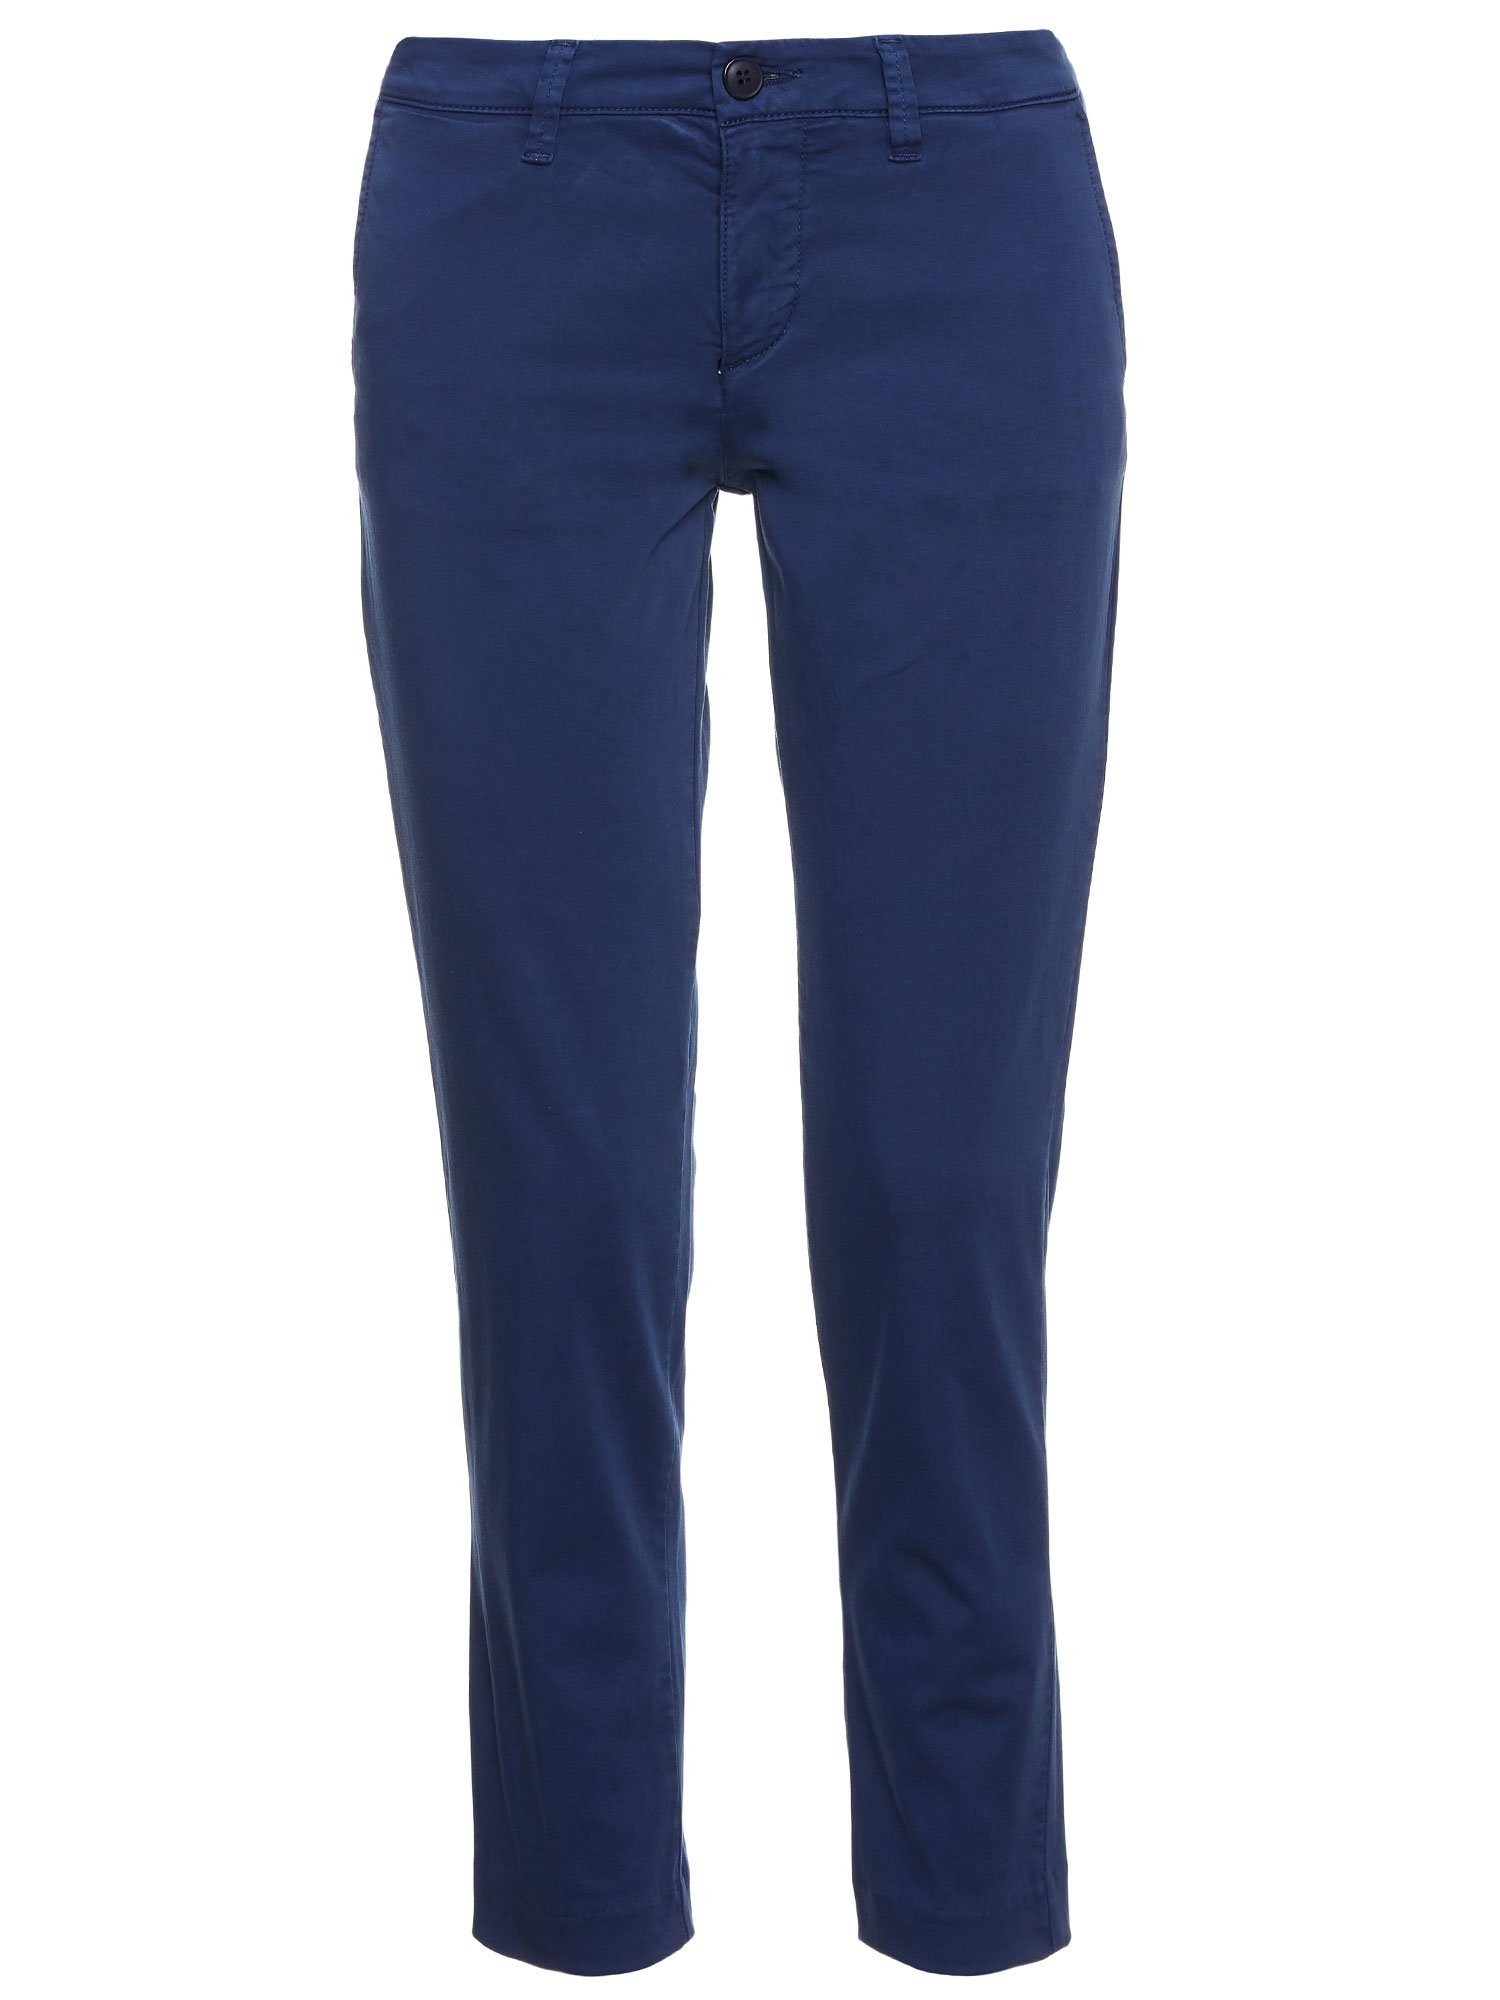 LONG COTTON SATIN TROUSERS - Blue Egeo Sea - Blauer